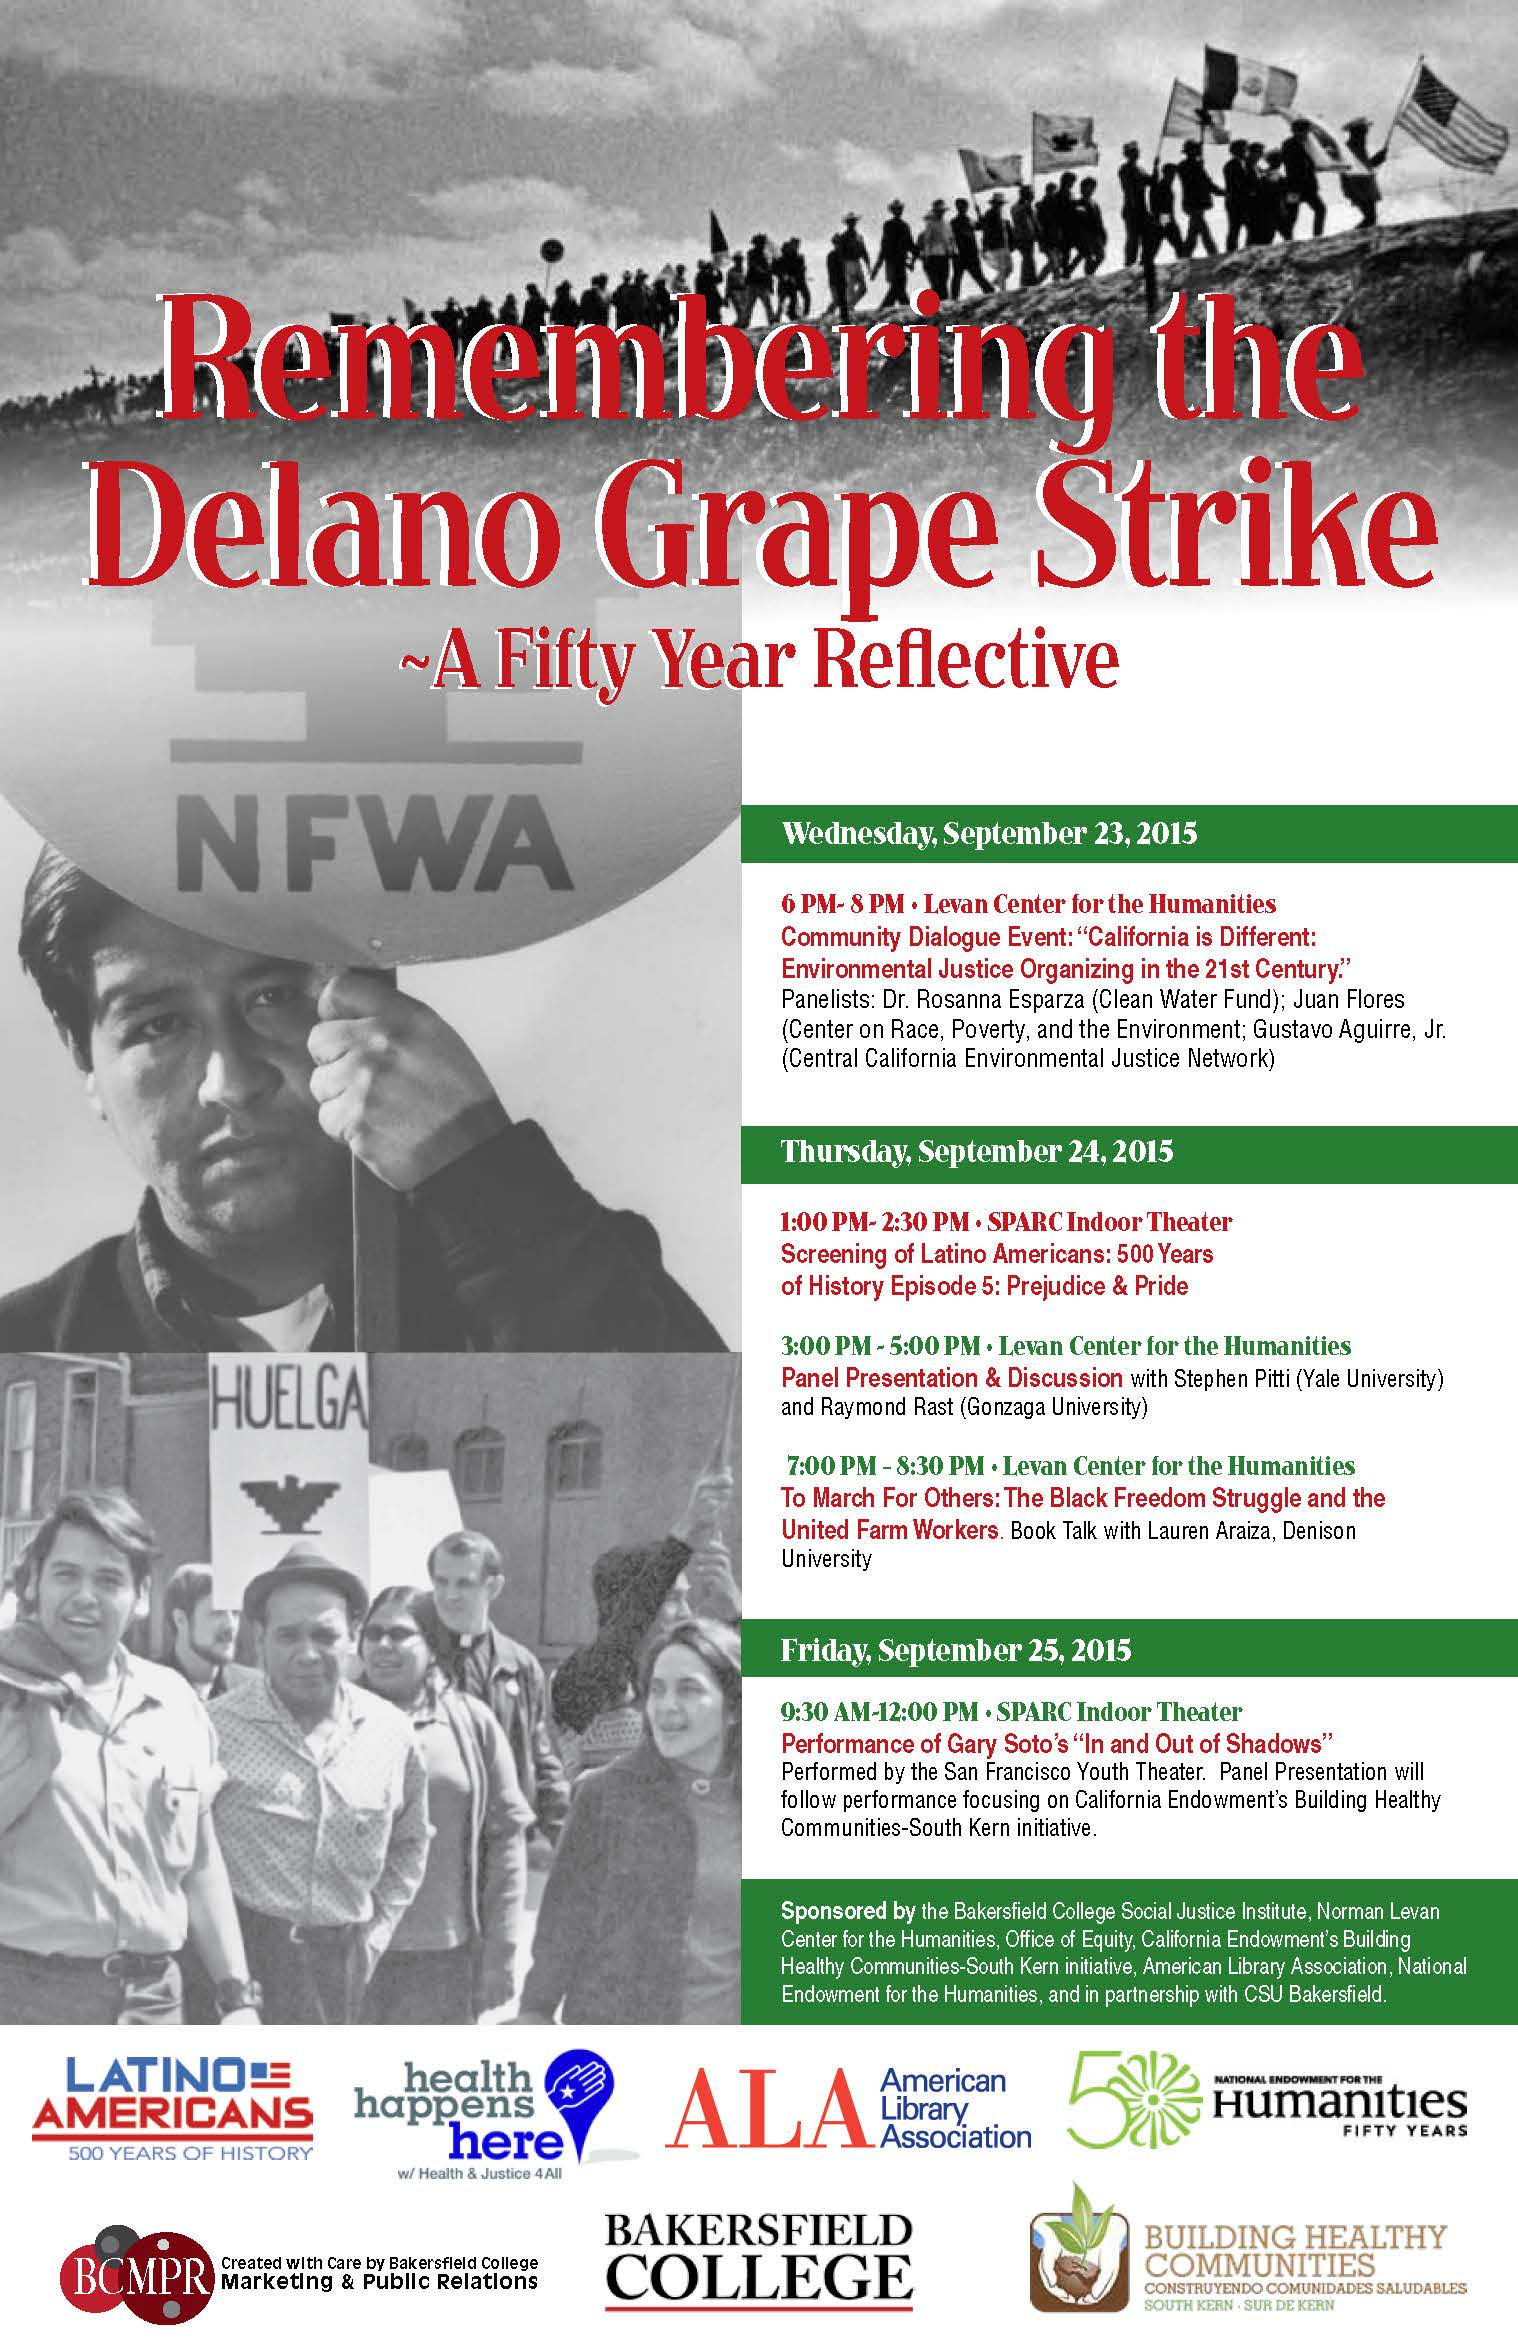 Remembering the Delano Grape Strike: A 50 year reflective. Events. Wednesday, Sept. 23, from 6-8 pm at Levan Center: Community Dialogue Event - California is Different Environmental Justice Organizing in the 21st century with Dr. Rosanna Esparza, Juan Flores and Gustavo Aguirre Jr. Thursday Sept. 24 from 1-2:30 pm at the SPARC Indoor Theatre - Screening of Latino Americans 500 years of history episode 5 Prejudice and Pride. 3 pm - 5pm at Levan Center, Panel Presentation and Discussion with Stephen Pitti and Raymond Rast. 7 pm - 8:30 pm at Levan Center, Book Talk with Lauren Araiza on To March for Others: The Black Freedom Struggle and the United Farm Workers. Friday Sept. 25, from 9:30 am to 12:00 pm at the SPARC Indoor Theatre - performance of Gary Soto's In and Out of Shadows by the San Francisco Youth Theatre.